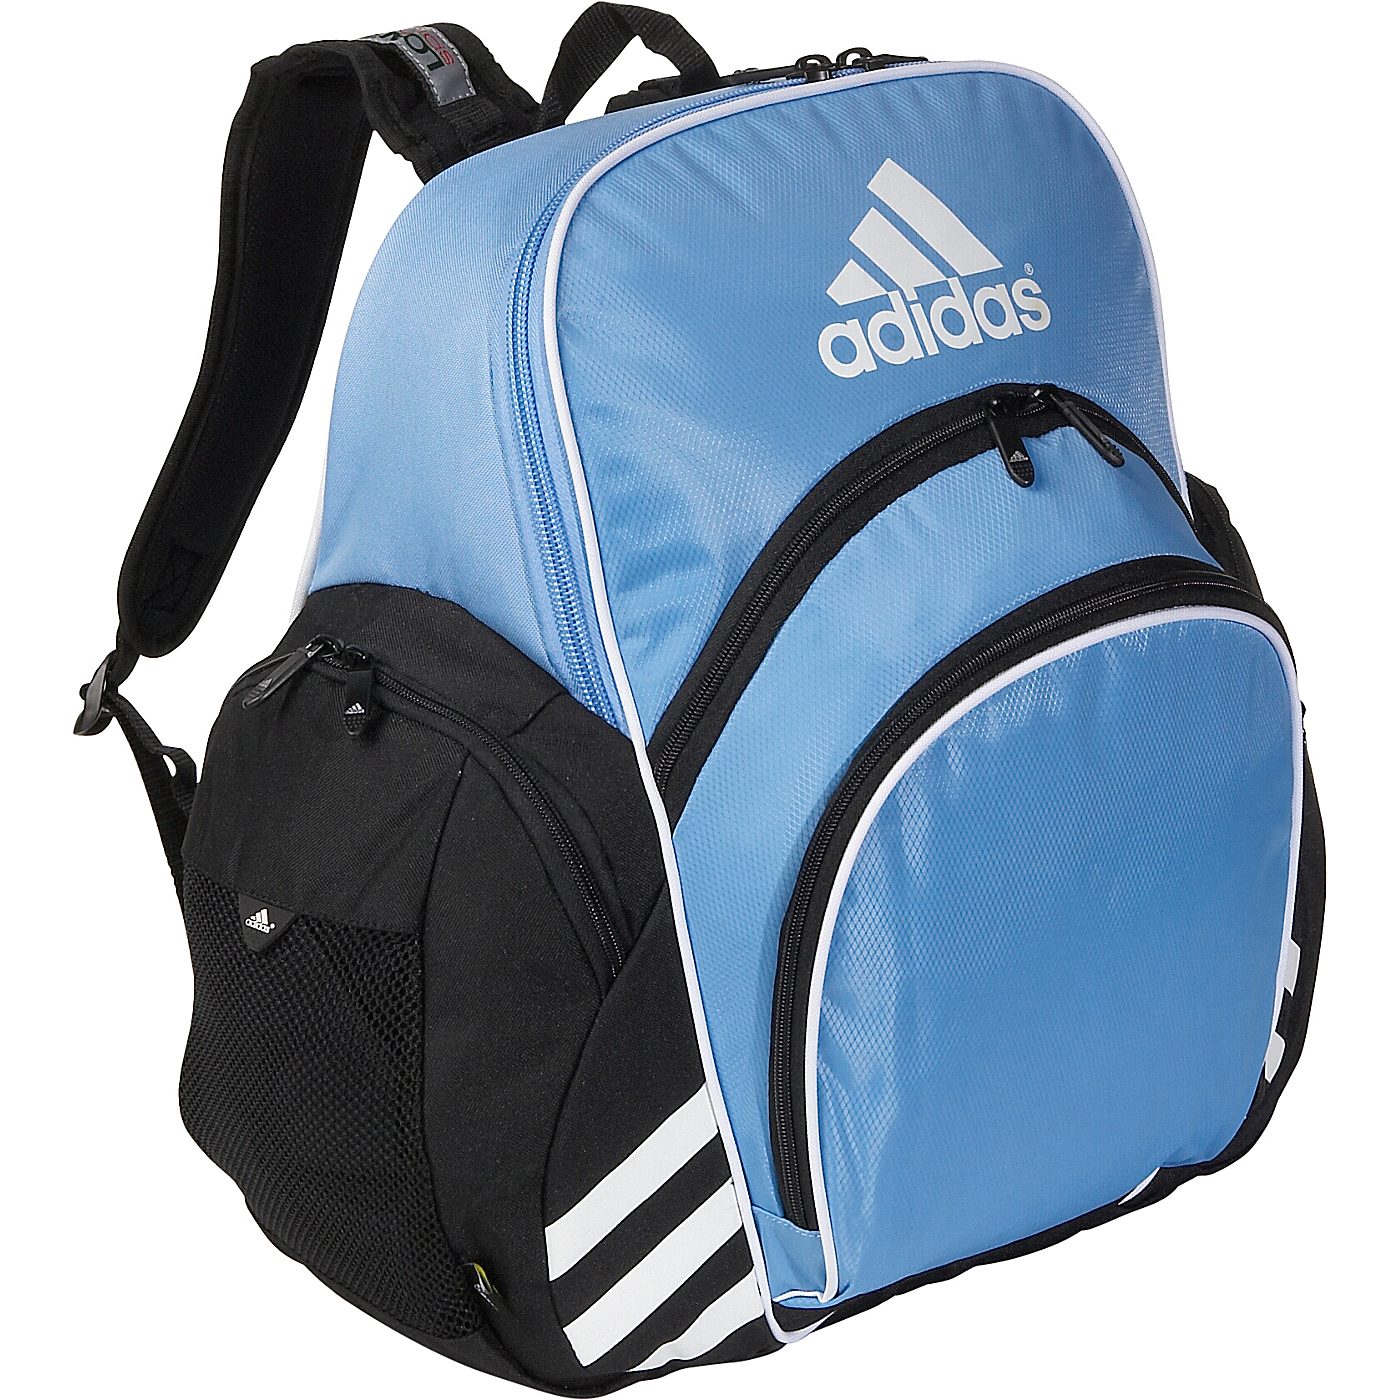 23a4de0052 adidas Copa Edge Backpack on PopScreen